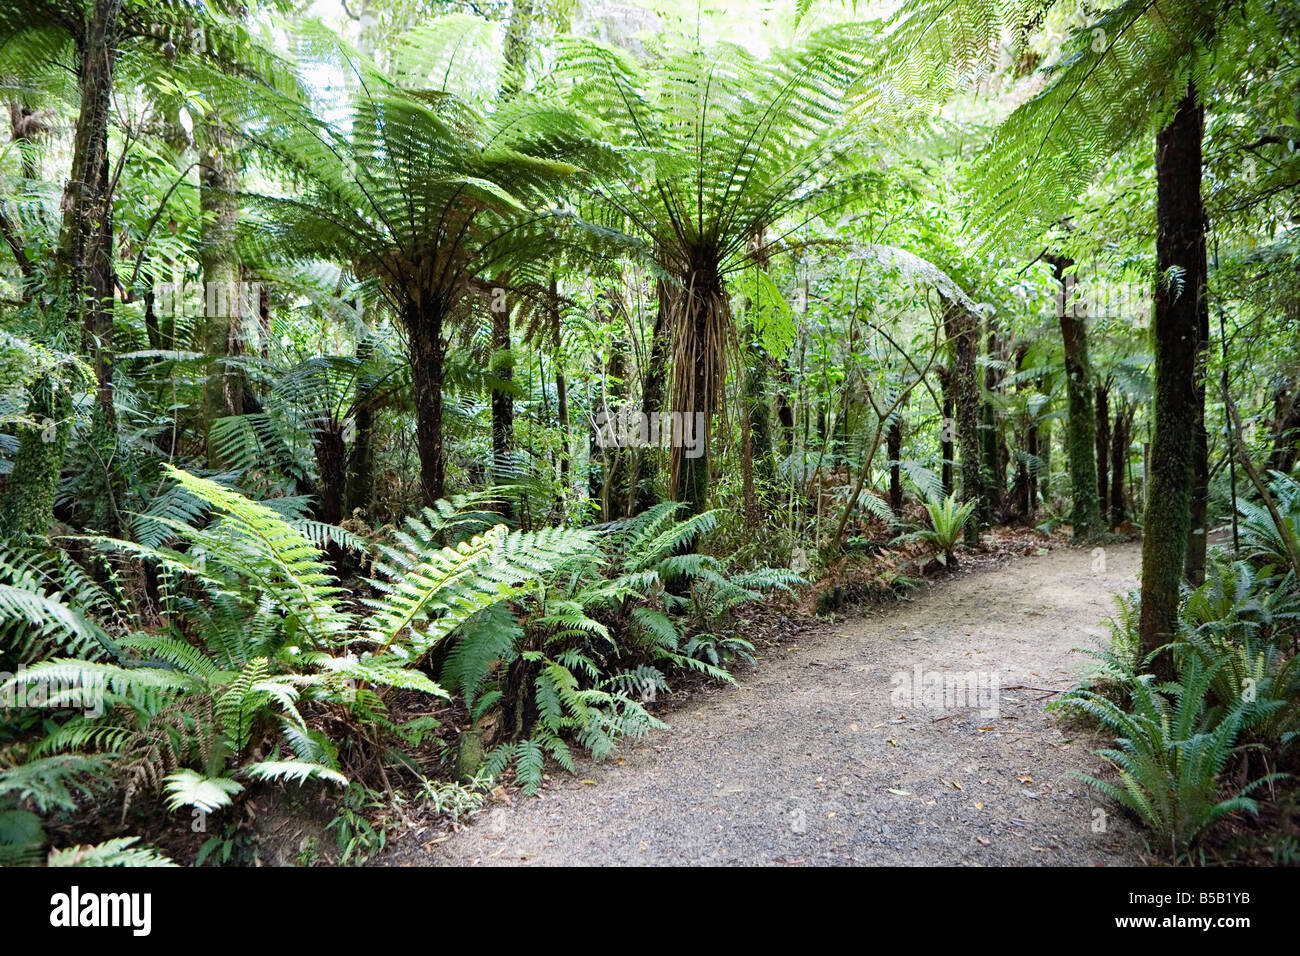 Bush walk, native trees and ferns, Mount Bruce National Wildlife Centre, Wairarapa, North Island, New Zealand, Pacific - Stock Image